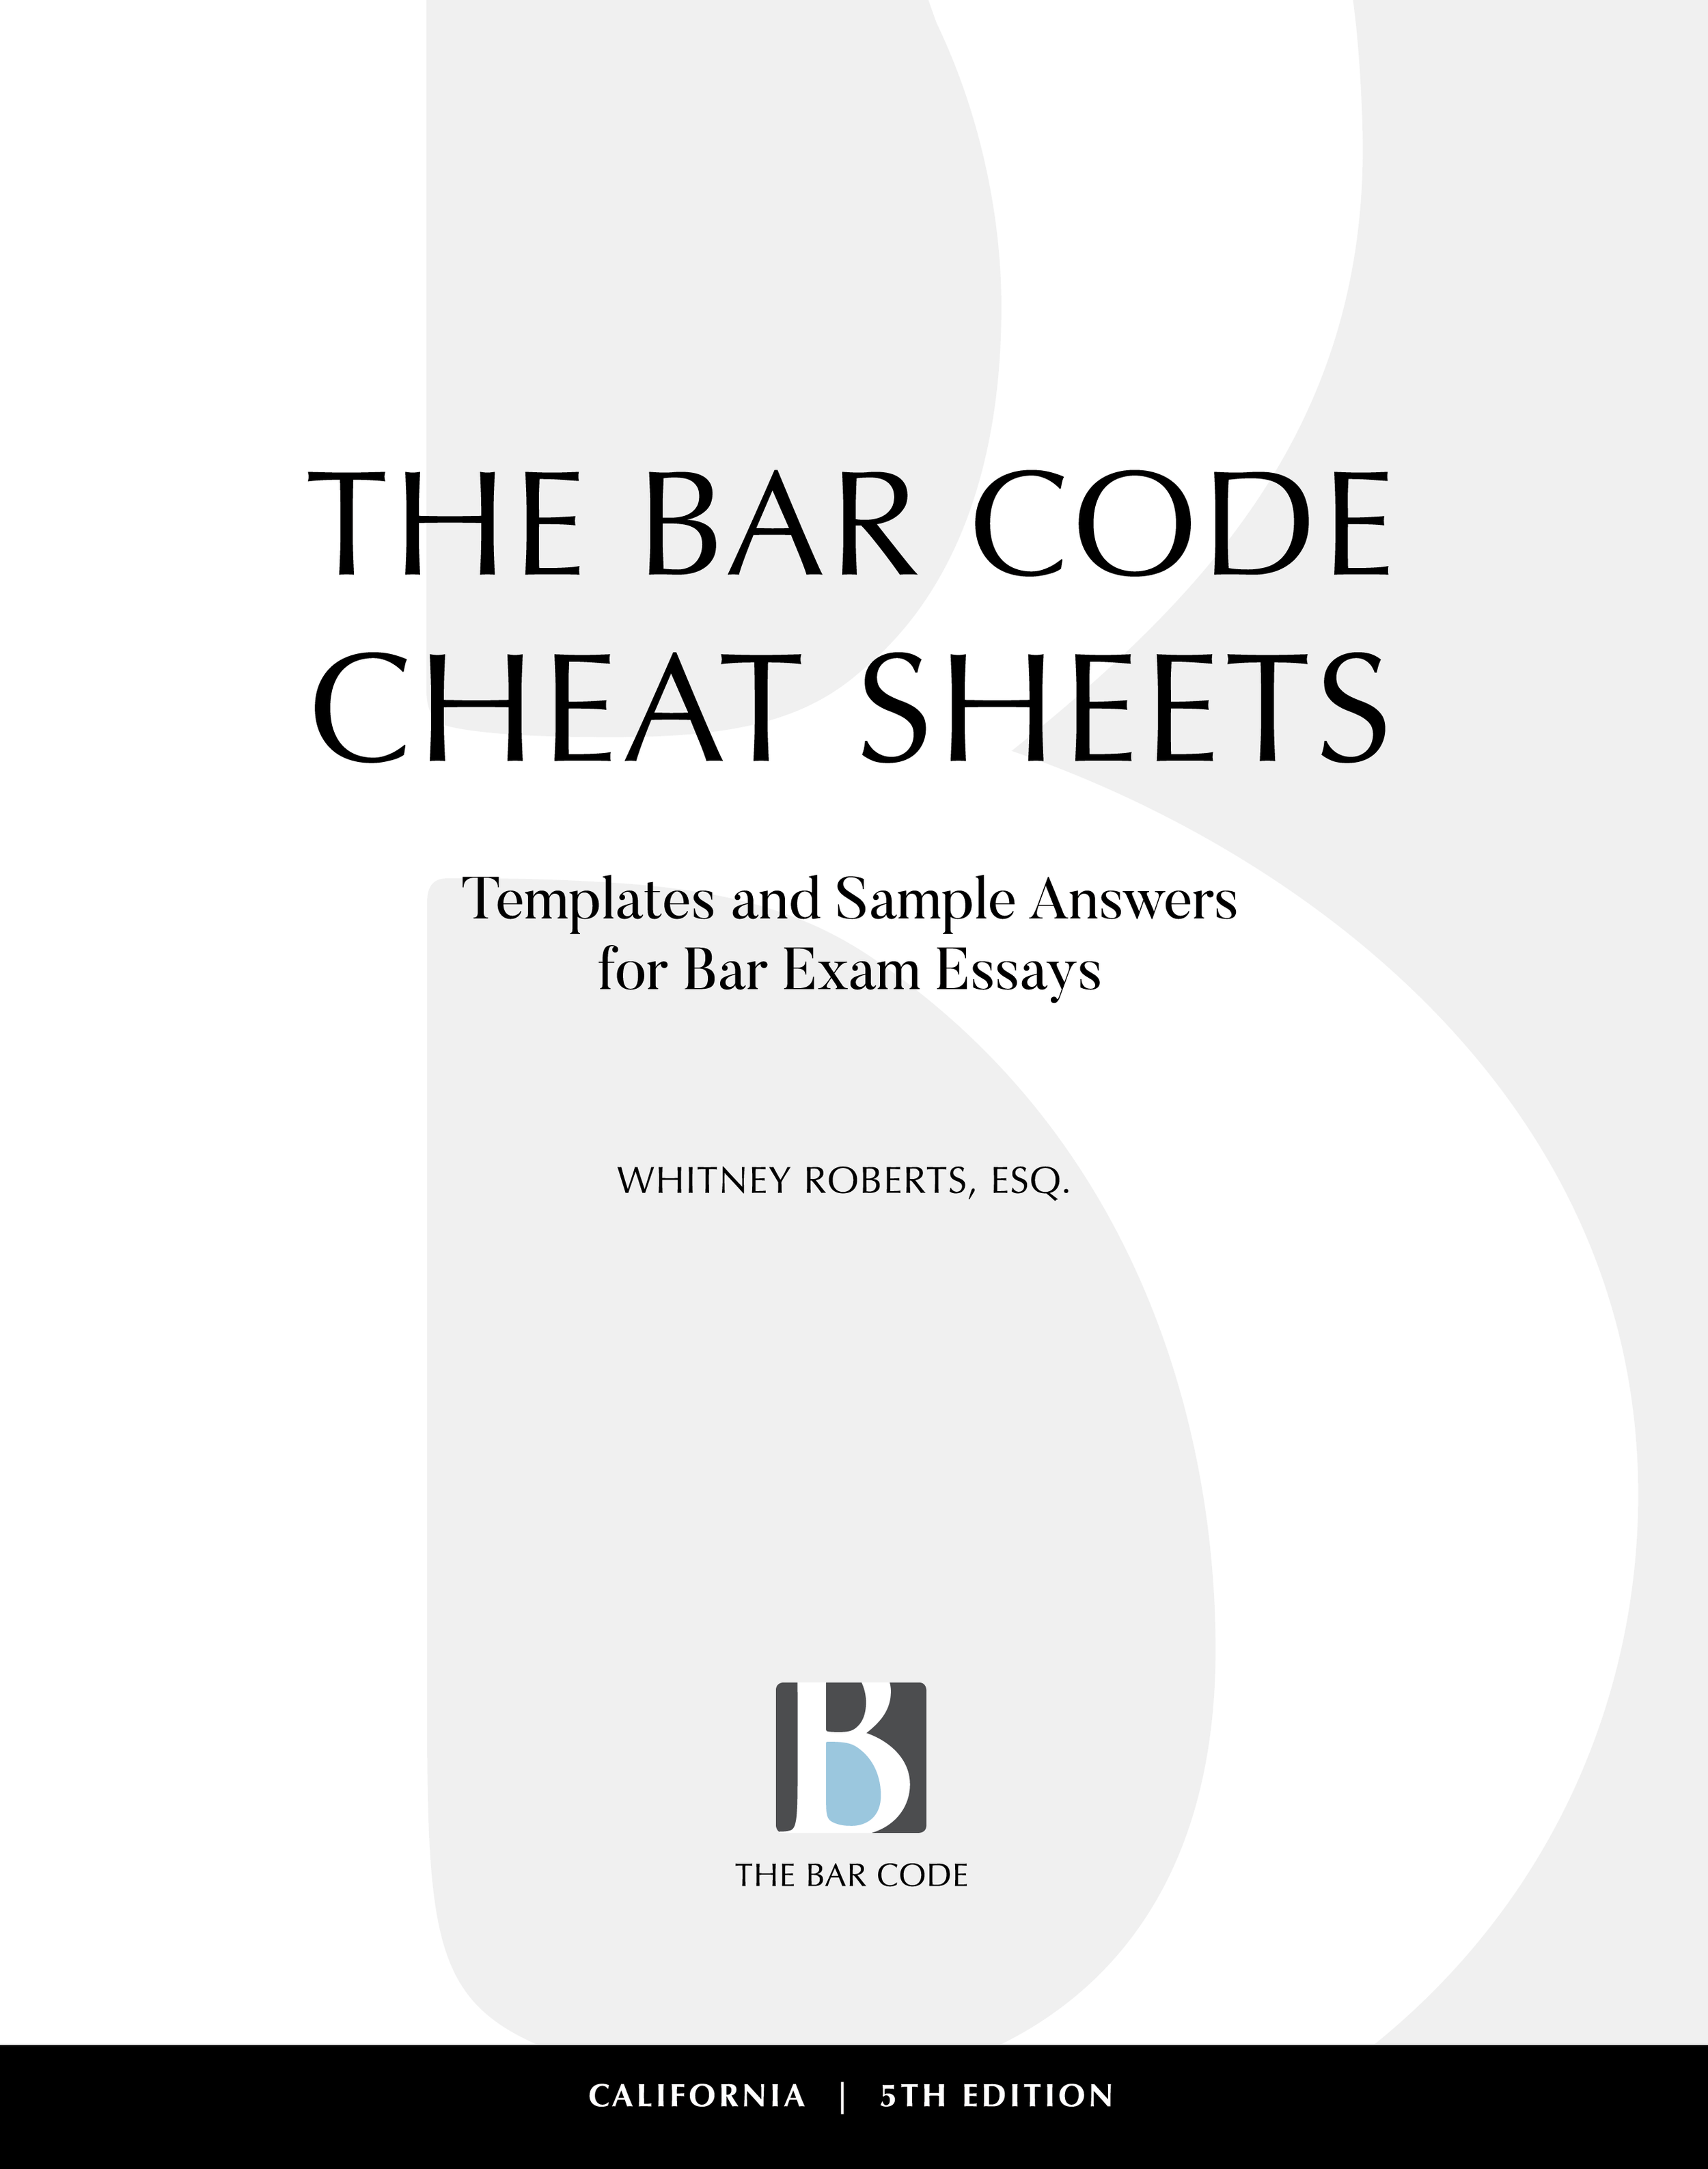 Book — The Bar Code